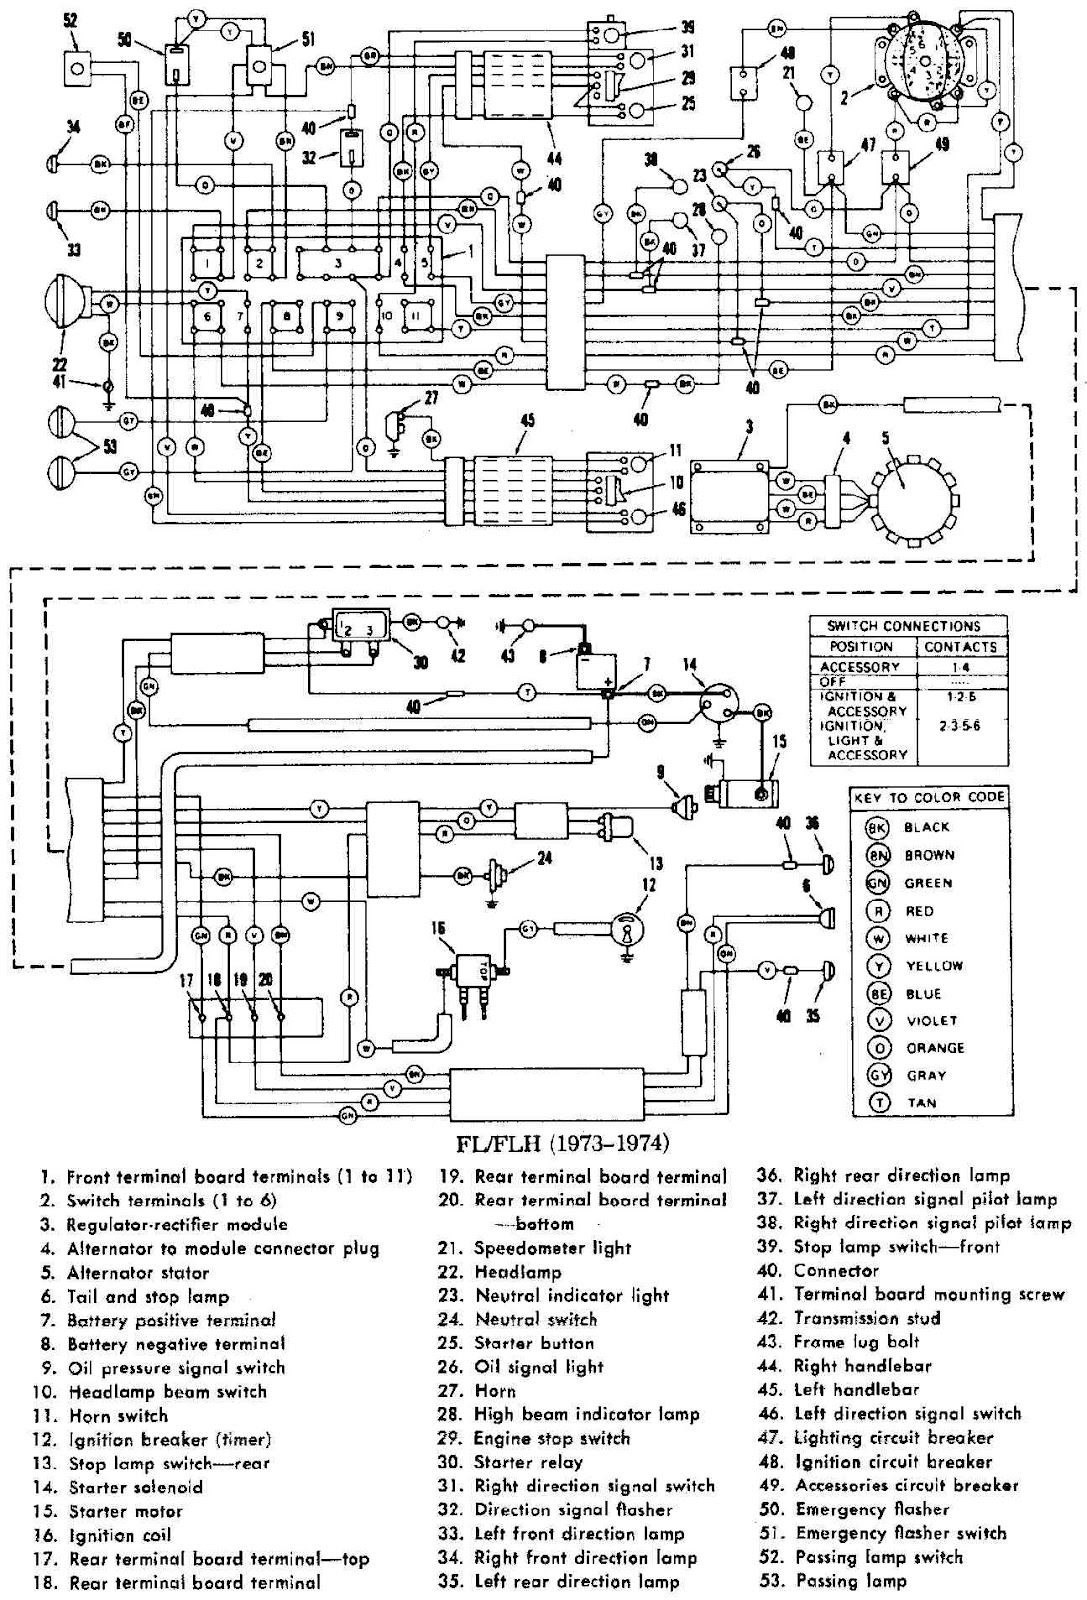 Harley Davidson Fl Flh 1973 74 on triumph chopper wiring diagram